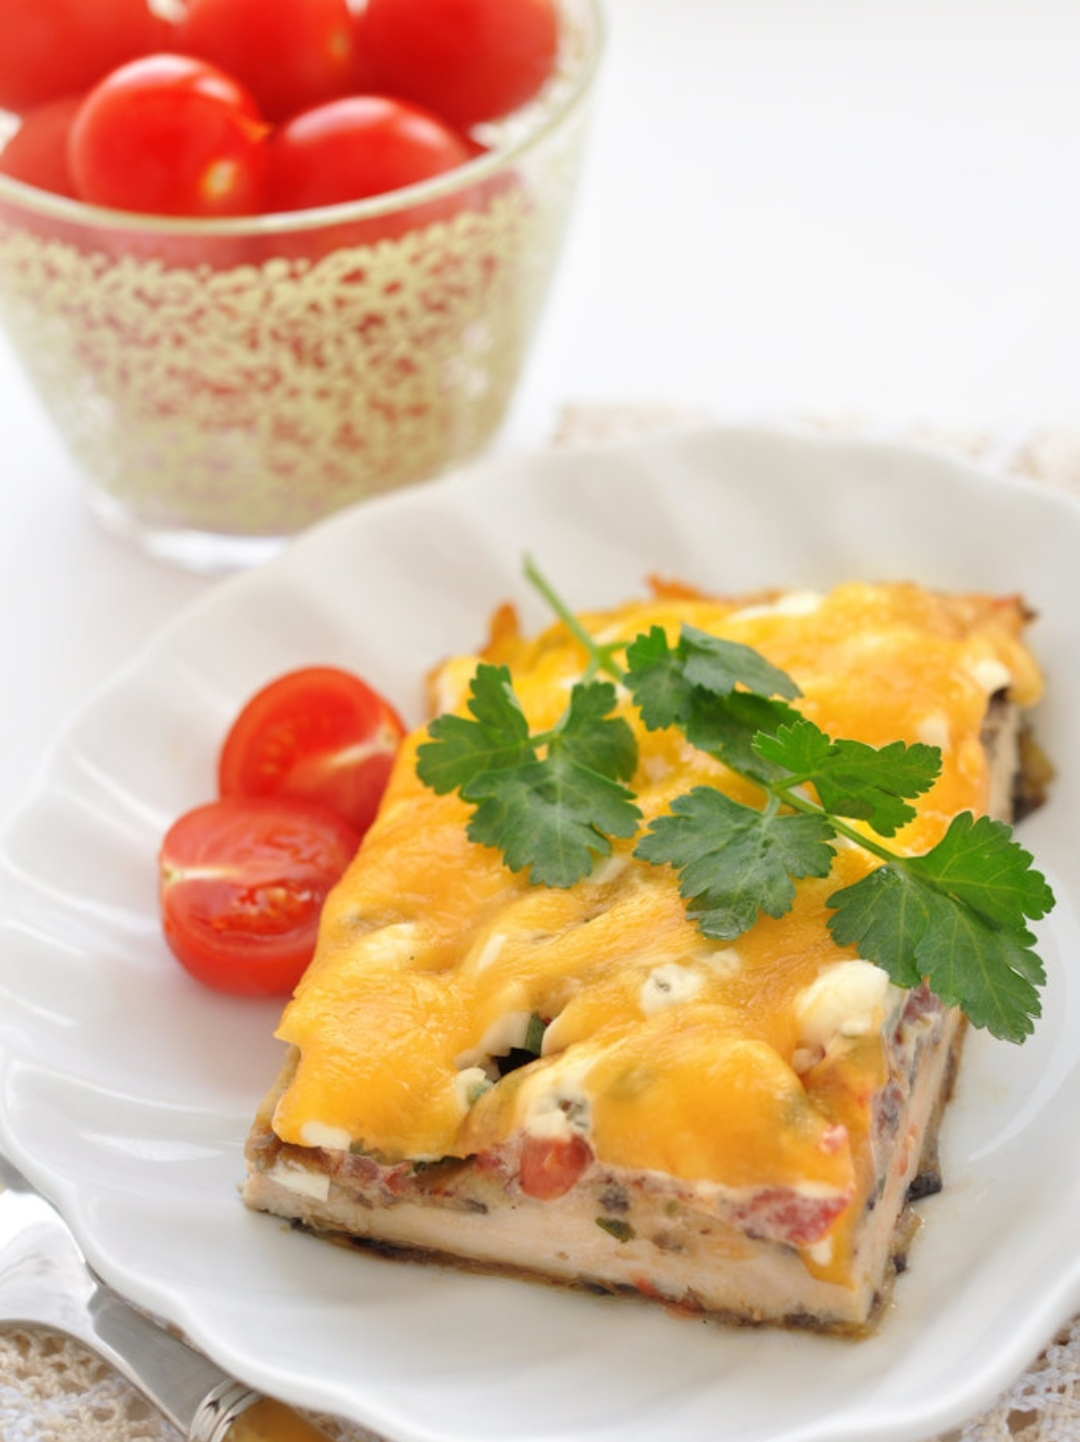 Chicken breast baked with eggplant and tomatoes